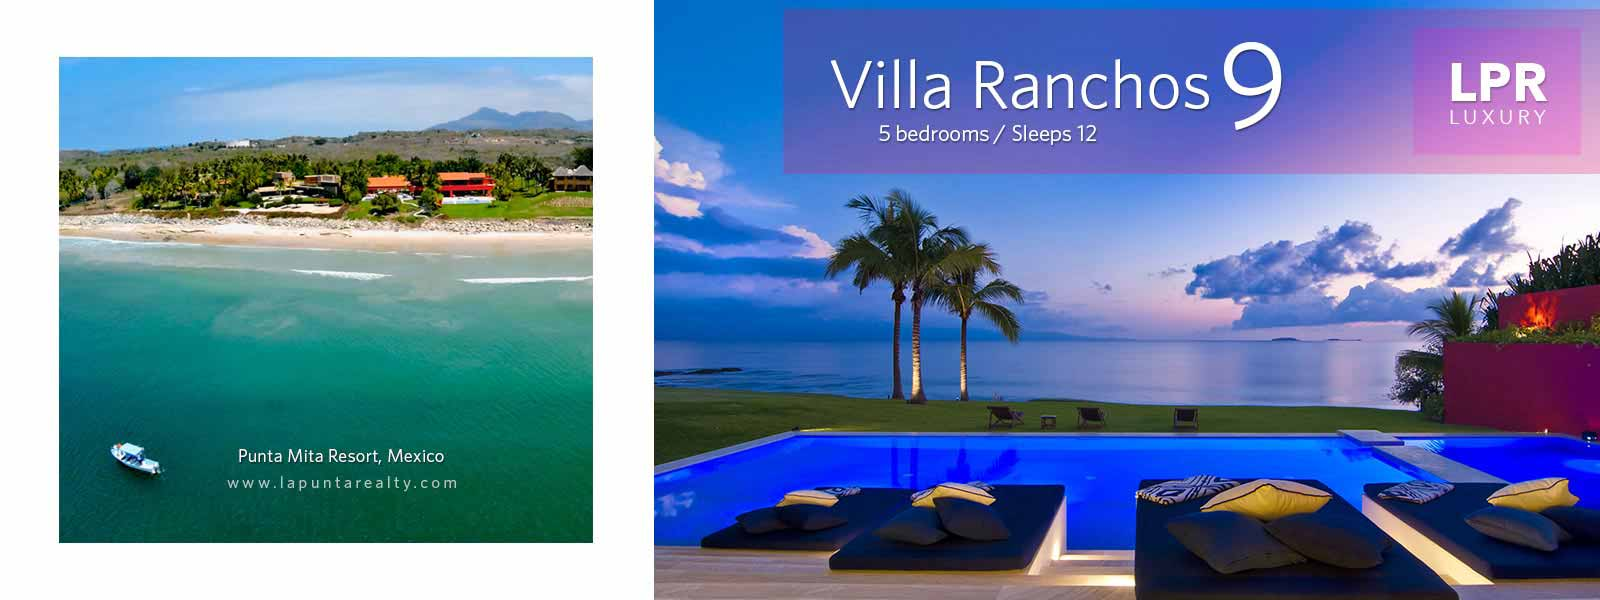 Villa Ranchos 9 - Luxury Punta Mita Rentals - Vacation Villas and Estates